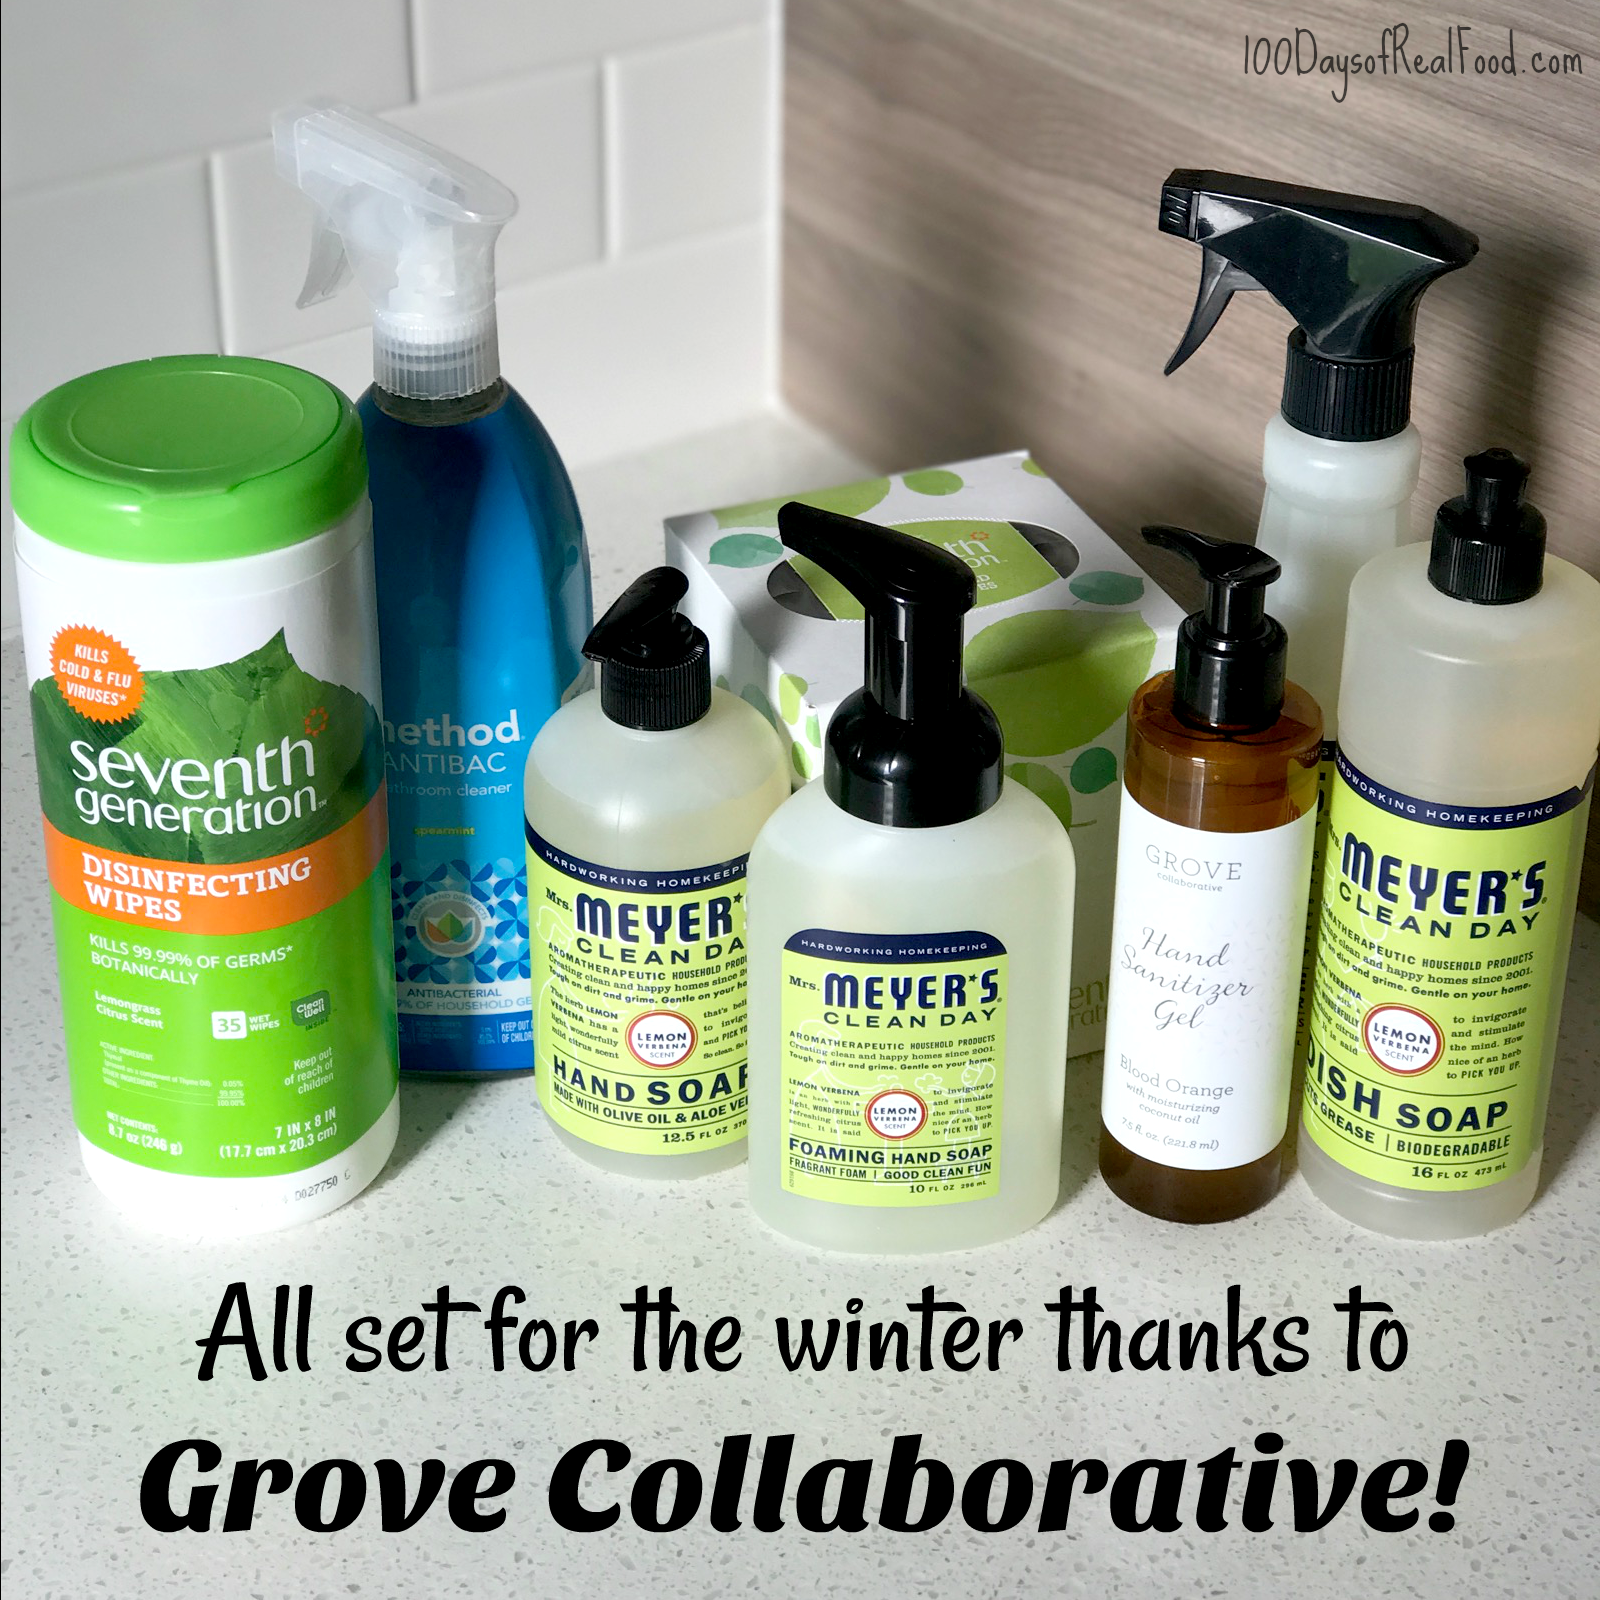 Non-toxic product selection from Grove Collaborative